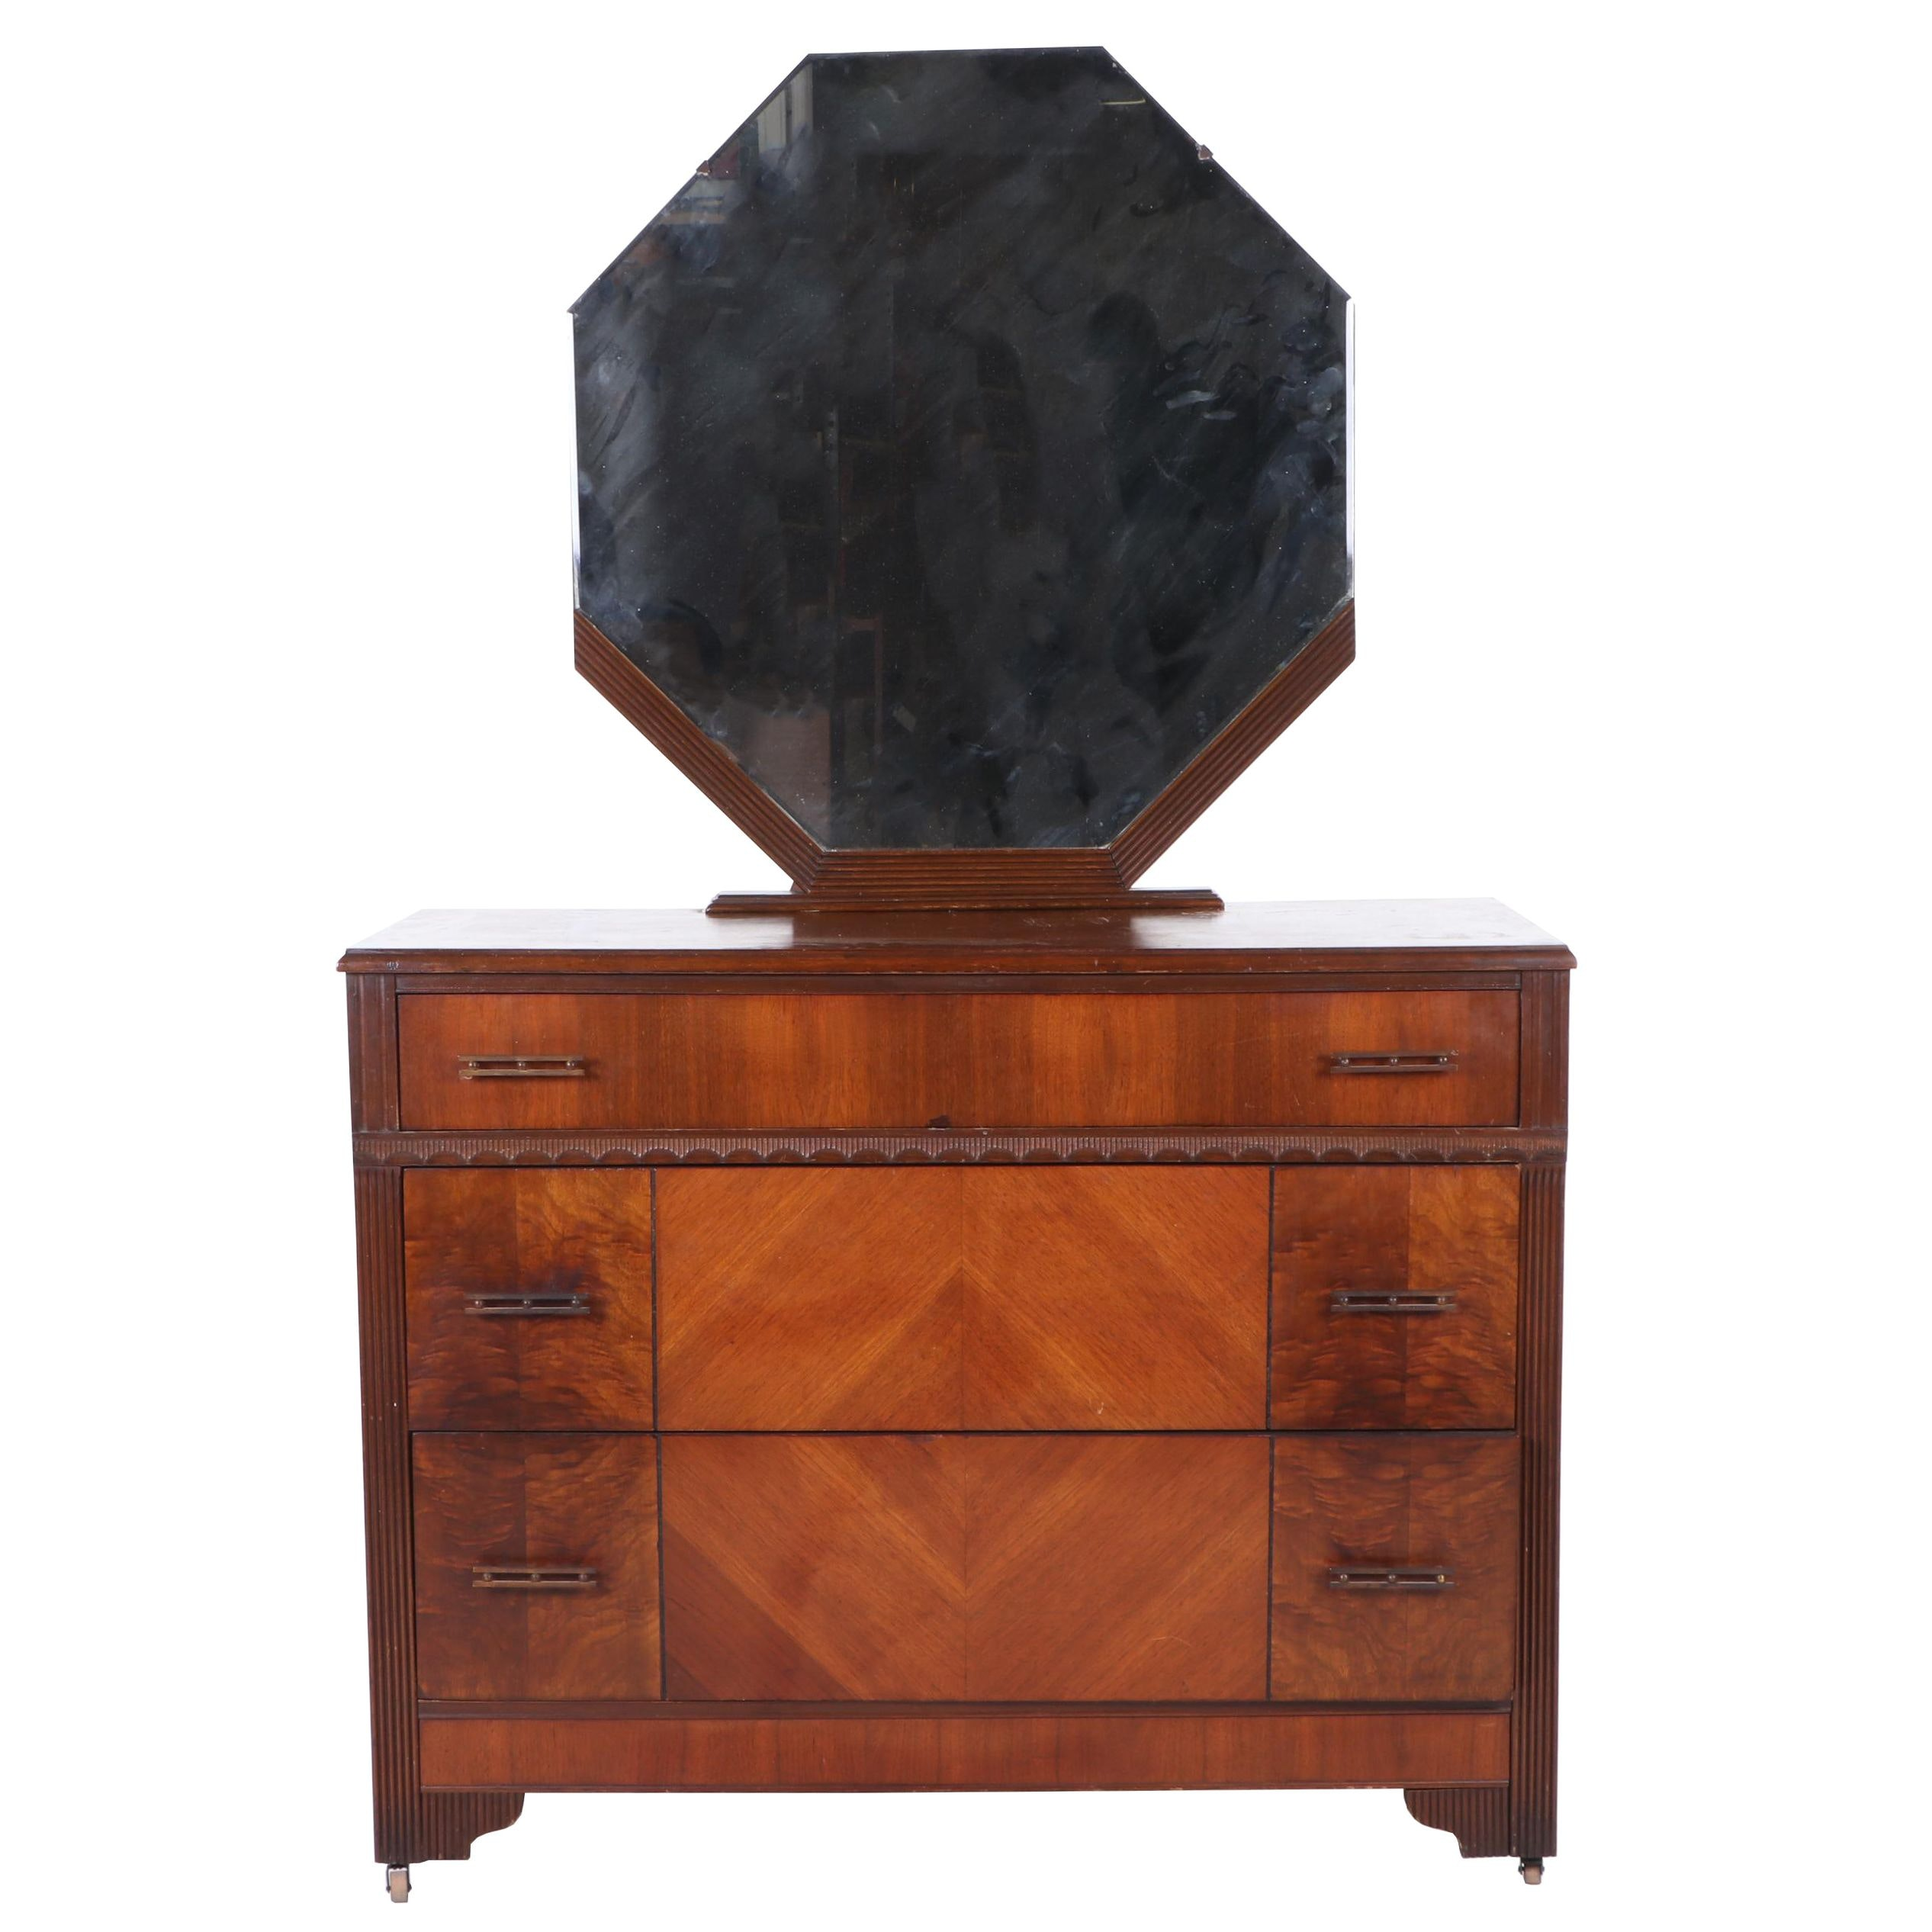 Art Deco Style Walnut Veneer Dresser with Mirror, Early 20th Century